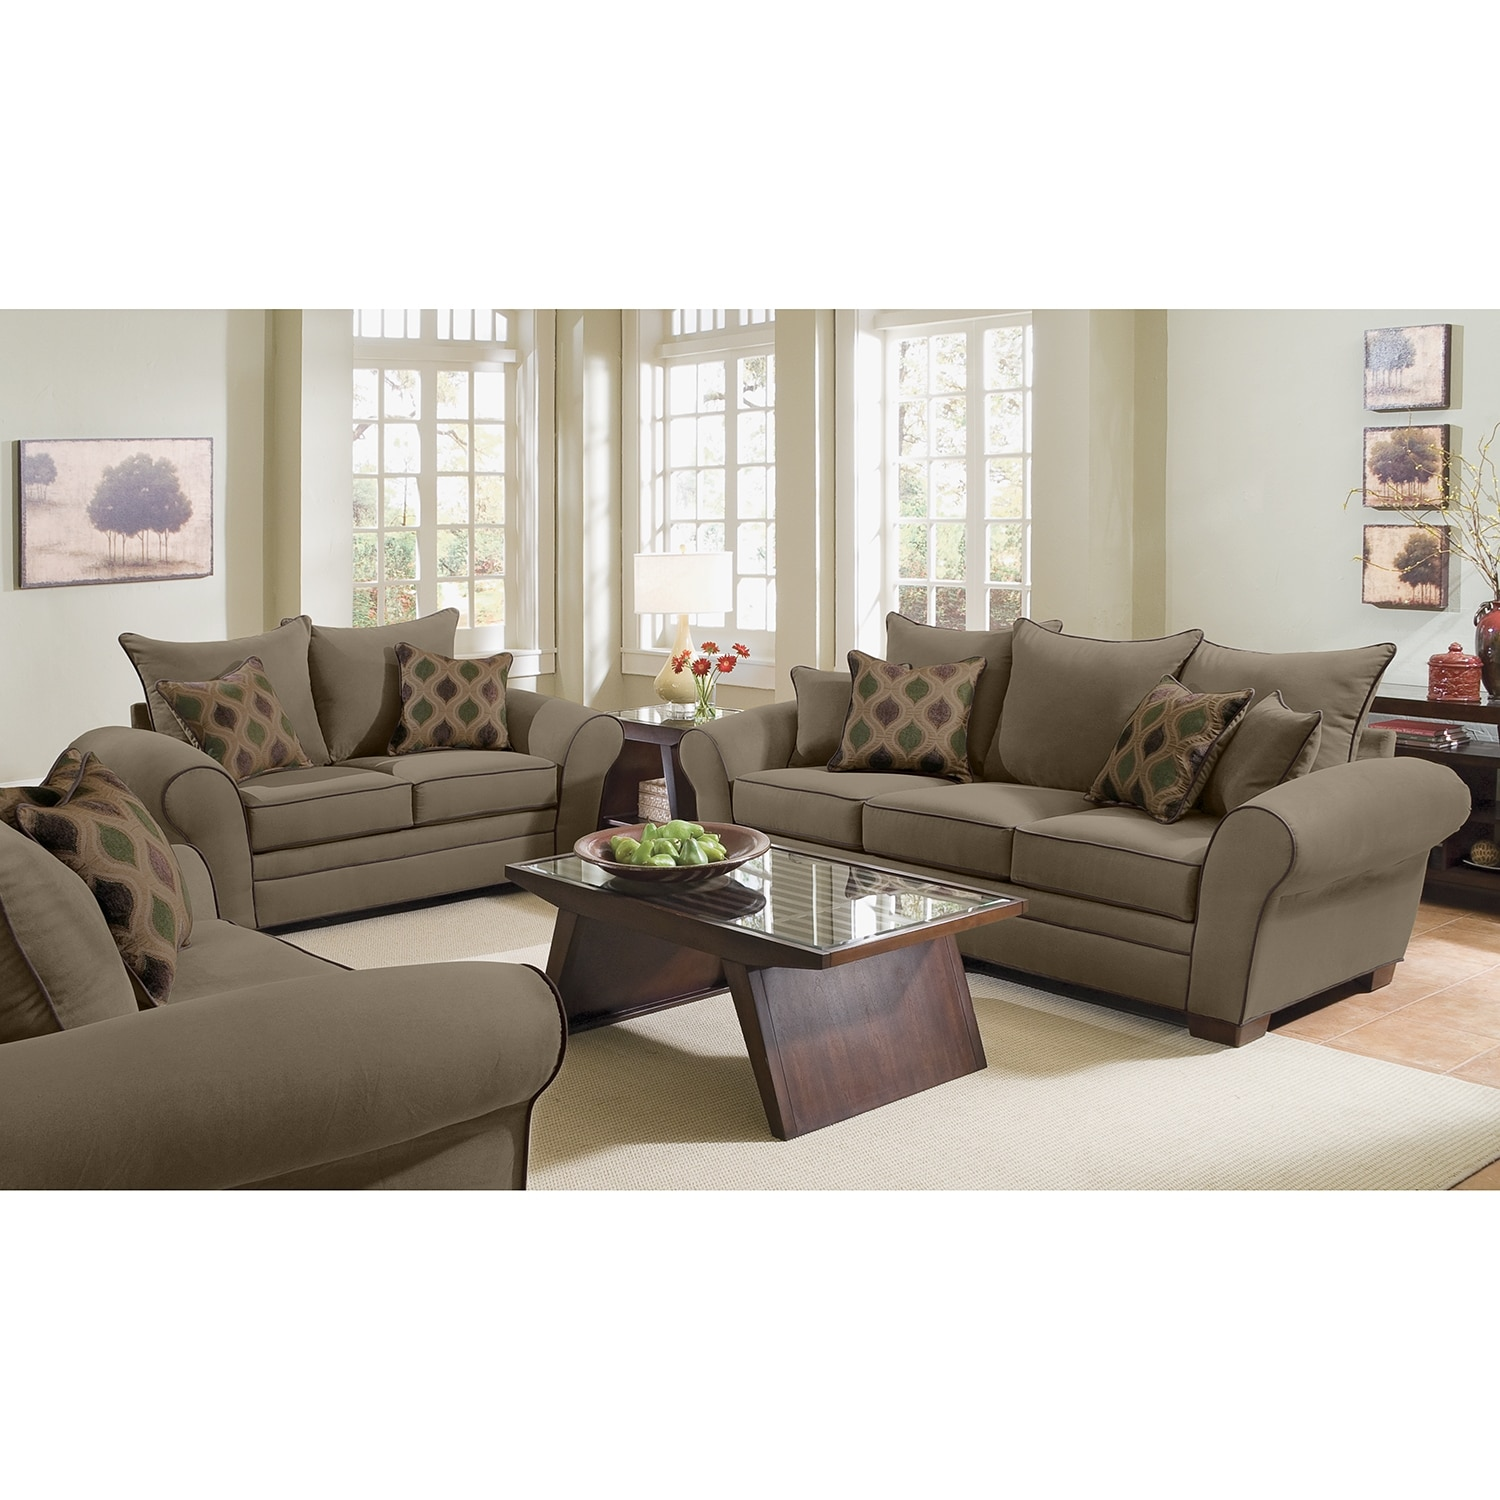 Rendezvous sofa and loveseat set olive value city for Living room 2 sofas